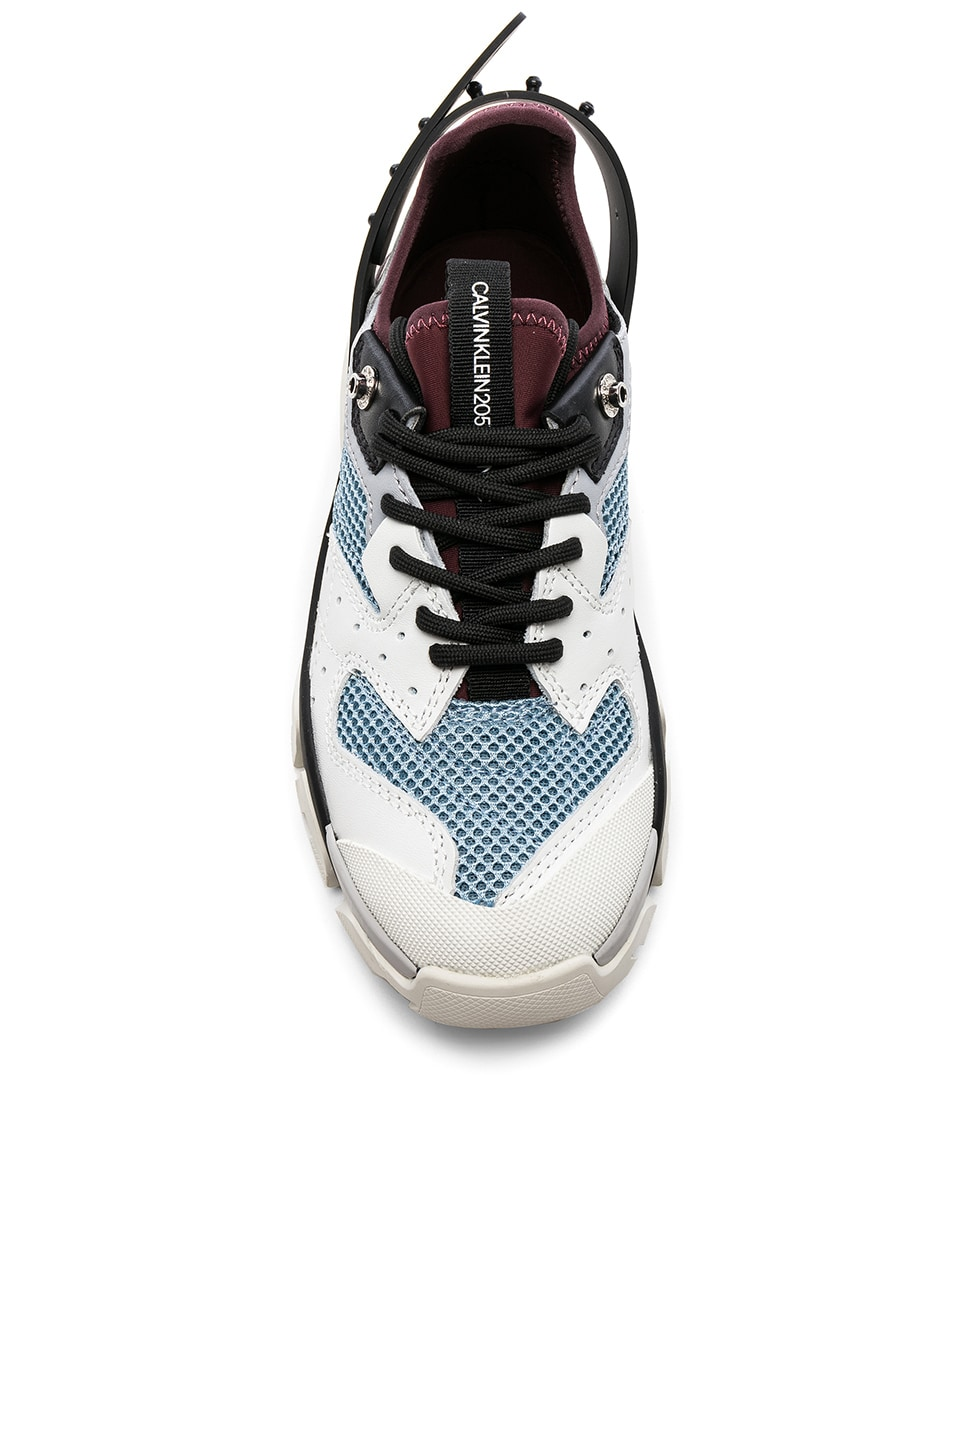 Image 4 of CALVIN KLEIN 205W39NYC Leather Carla Sneakers in White, Azure & Burgundy